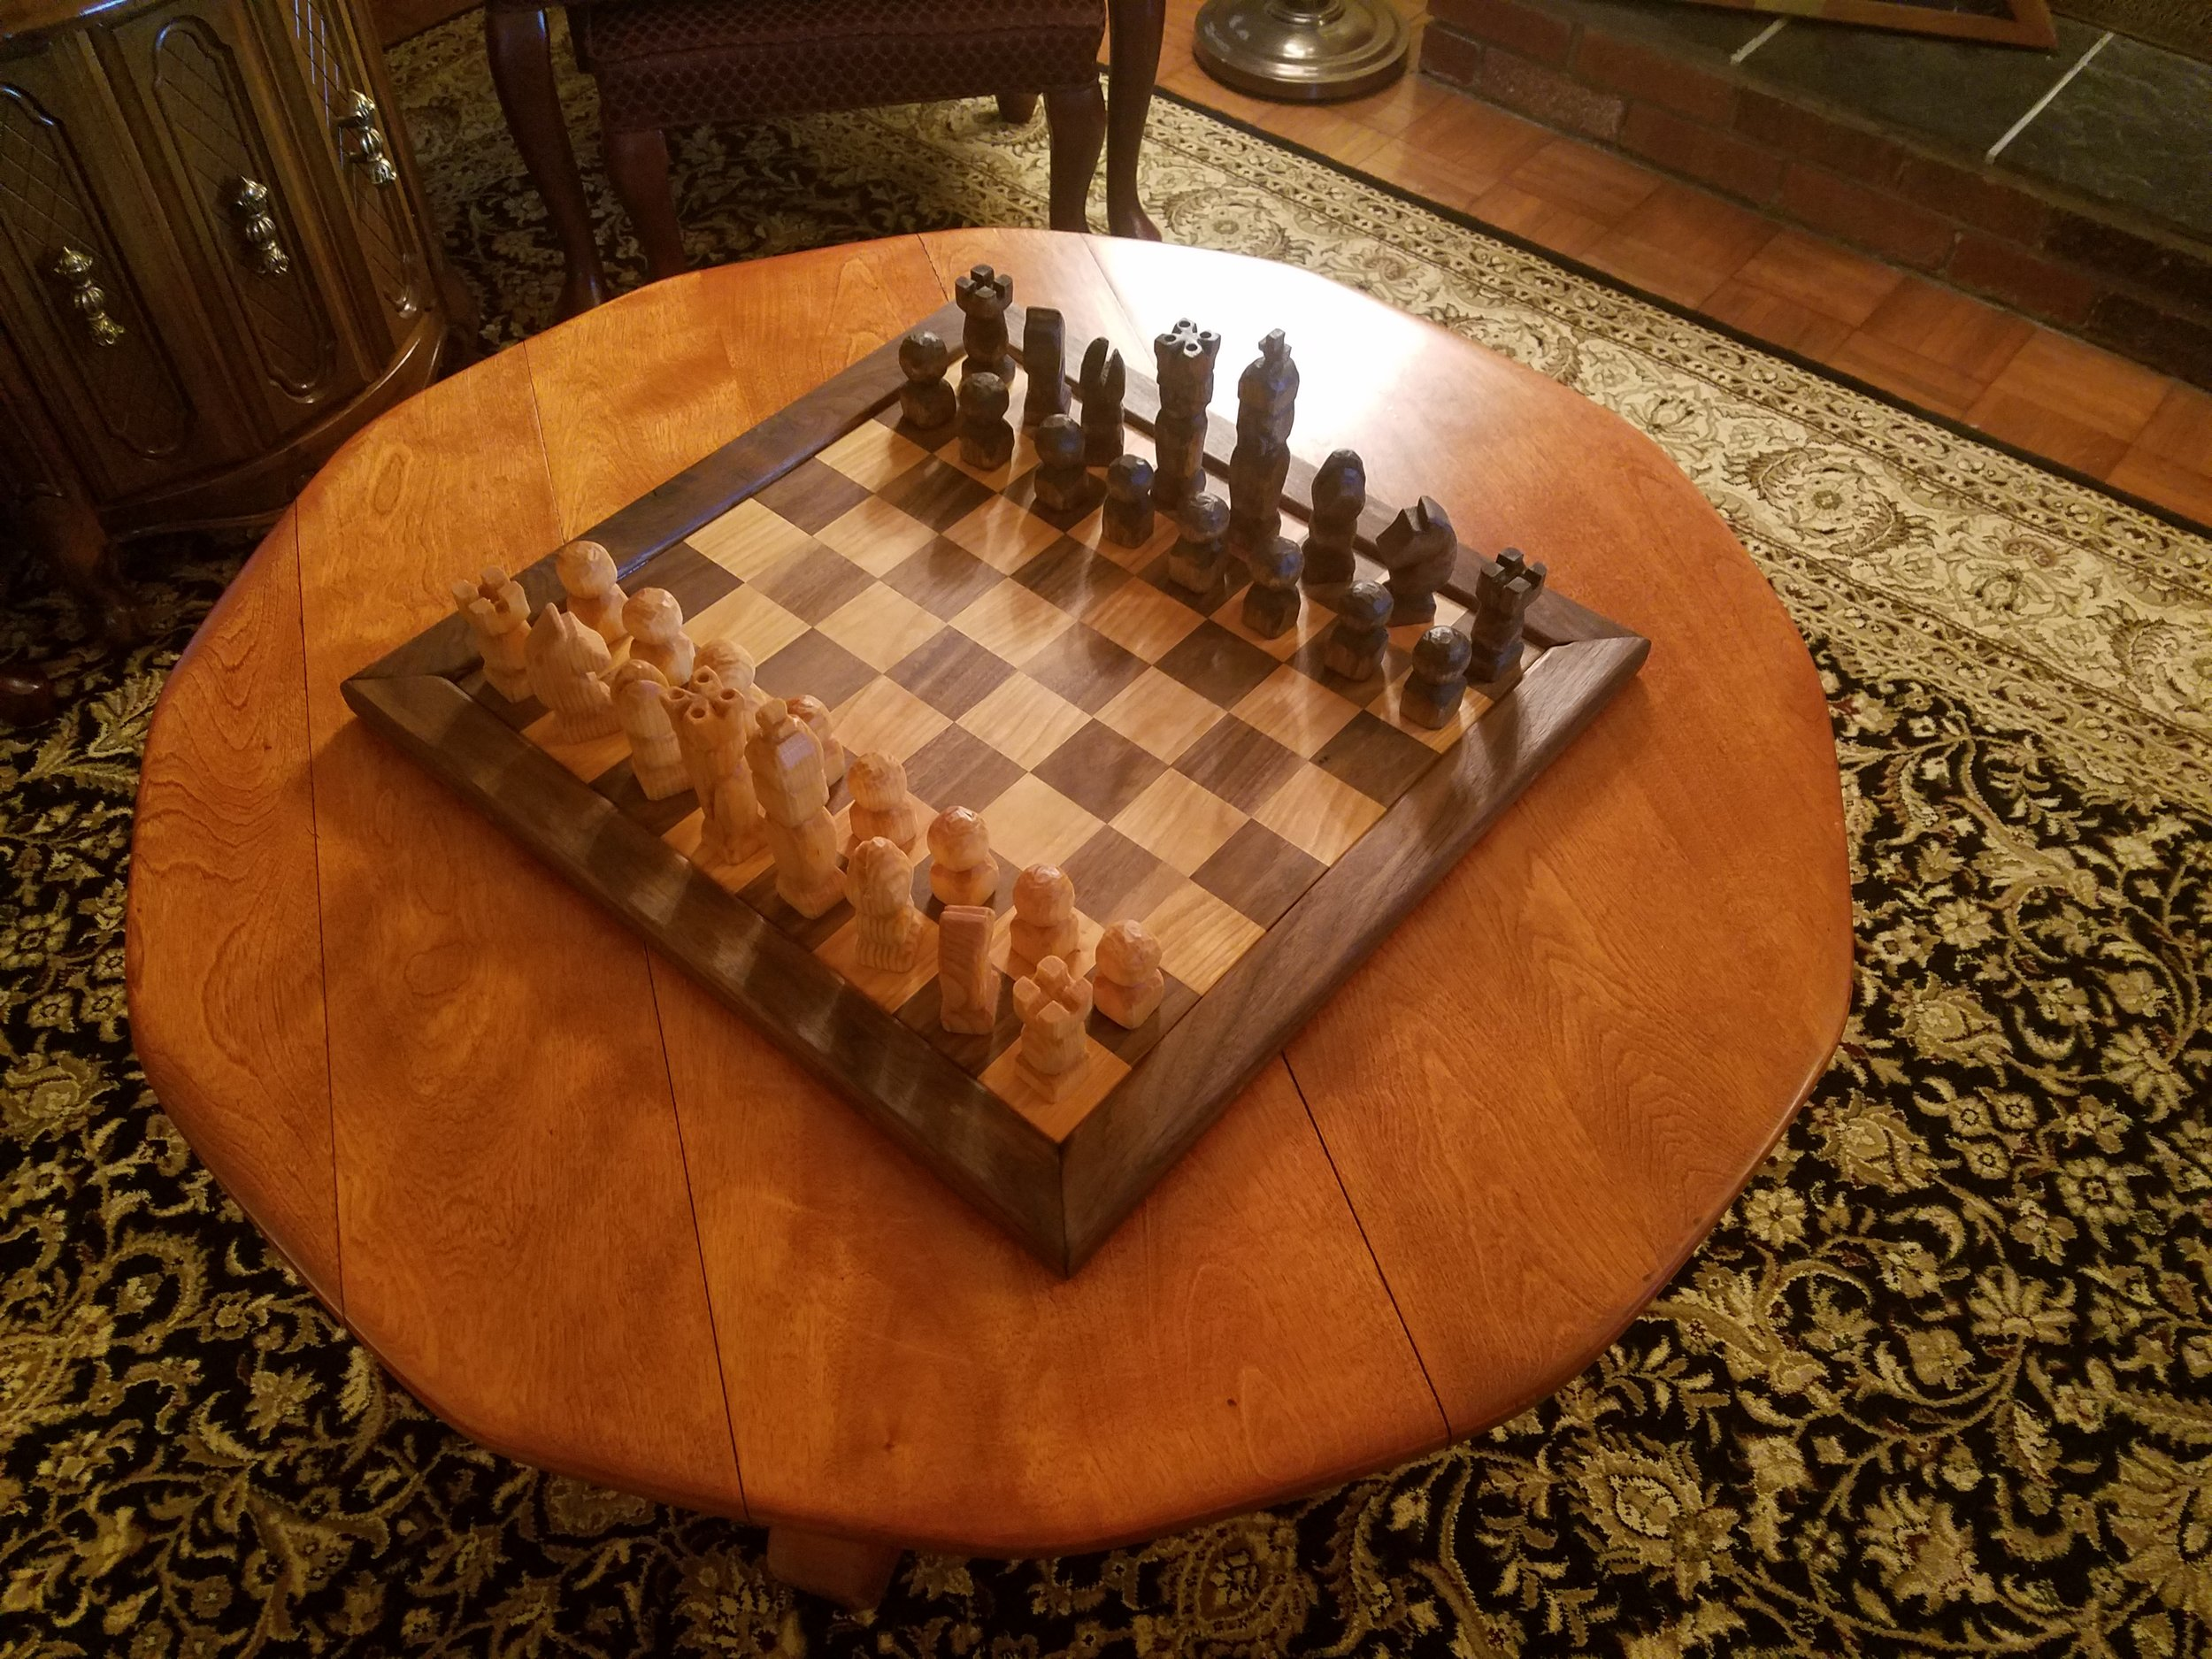 Hand carved chess pieces from basswood … hand made chessboard from walnut and cherry.